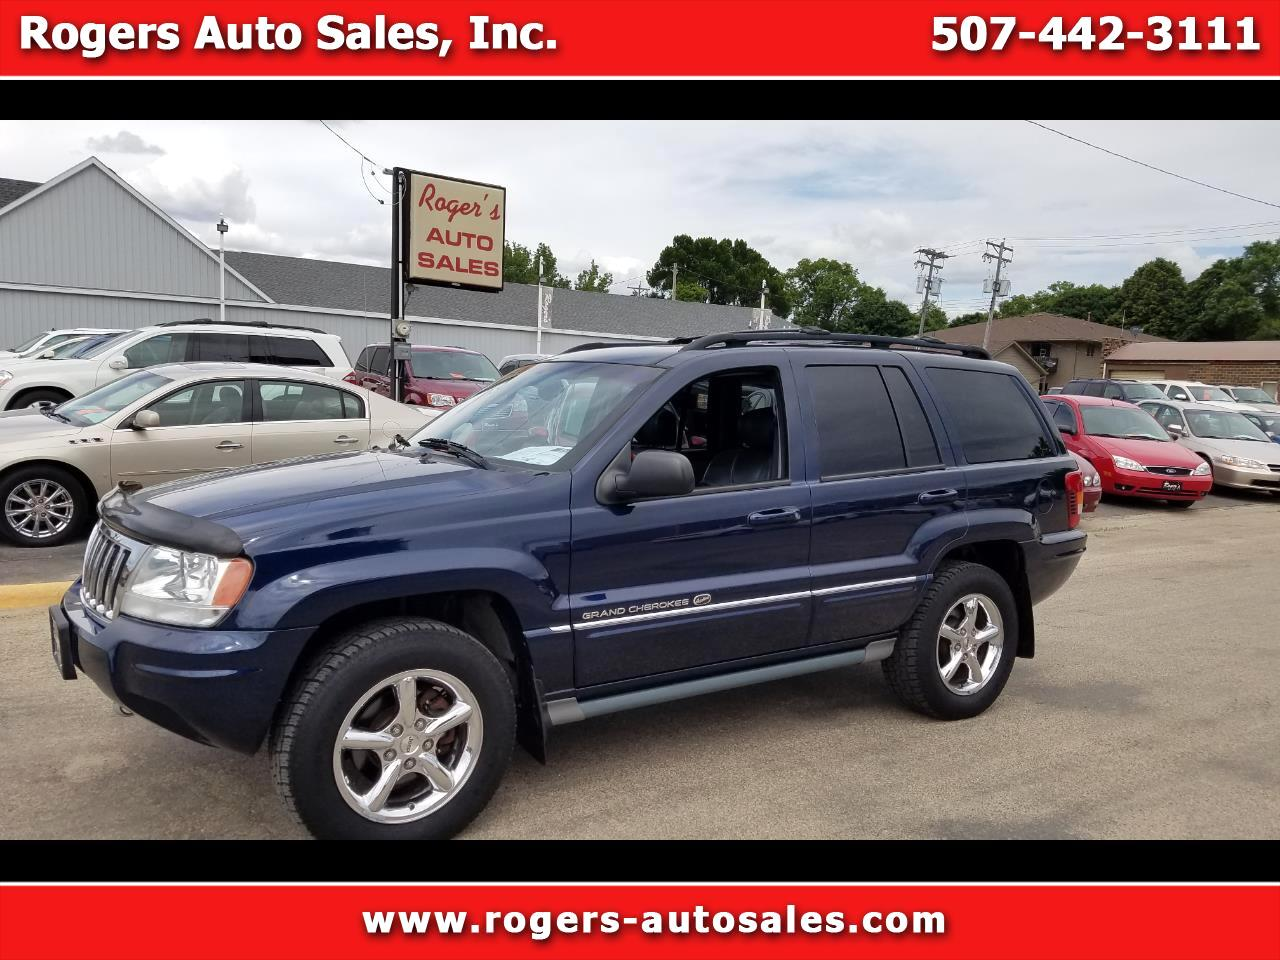 2004 Jeep Grand Cherokee Overland 4WD